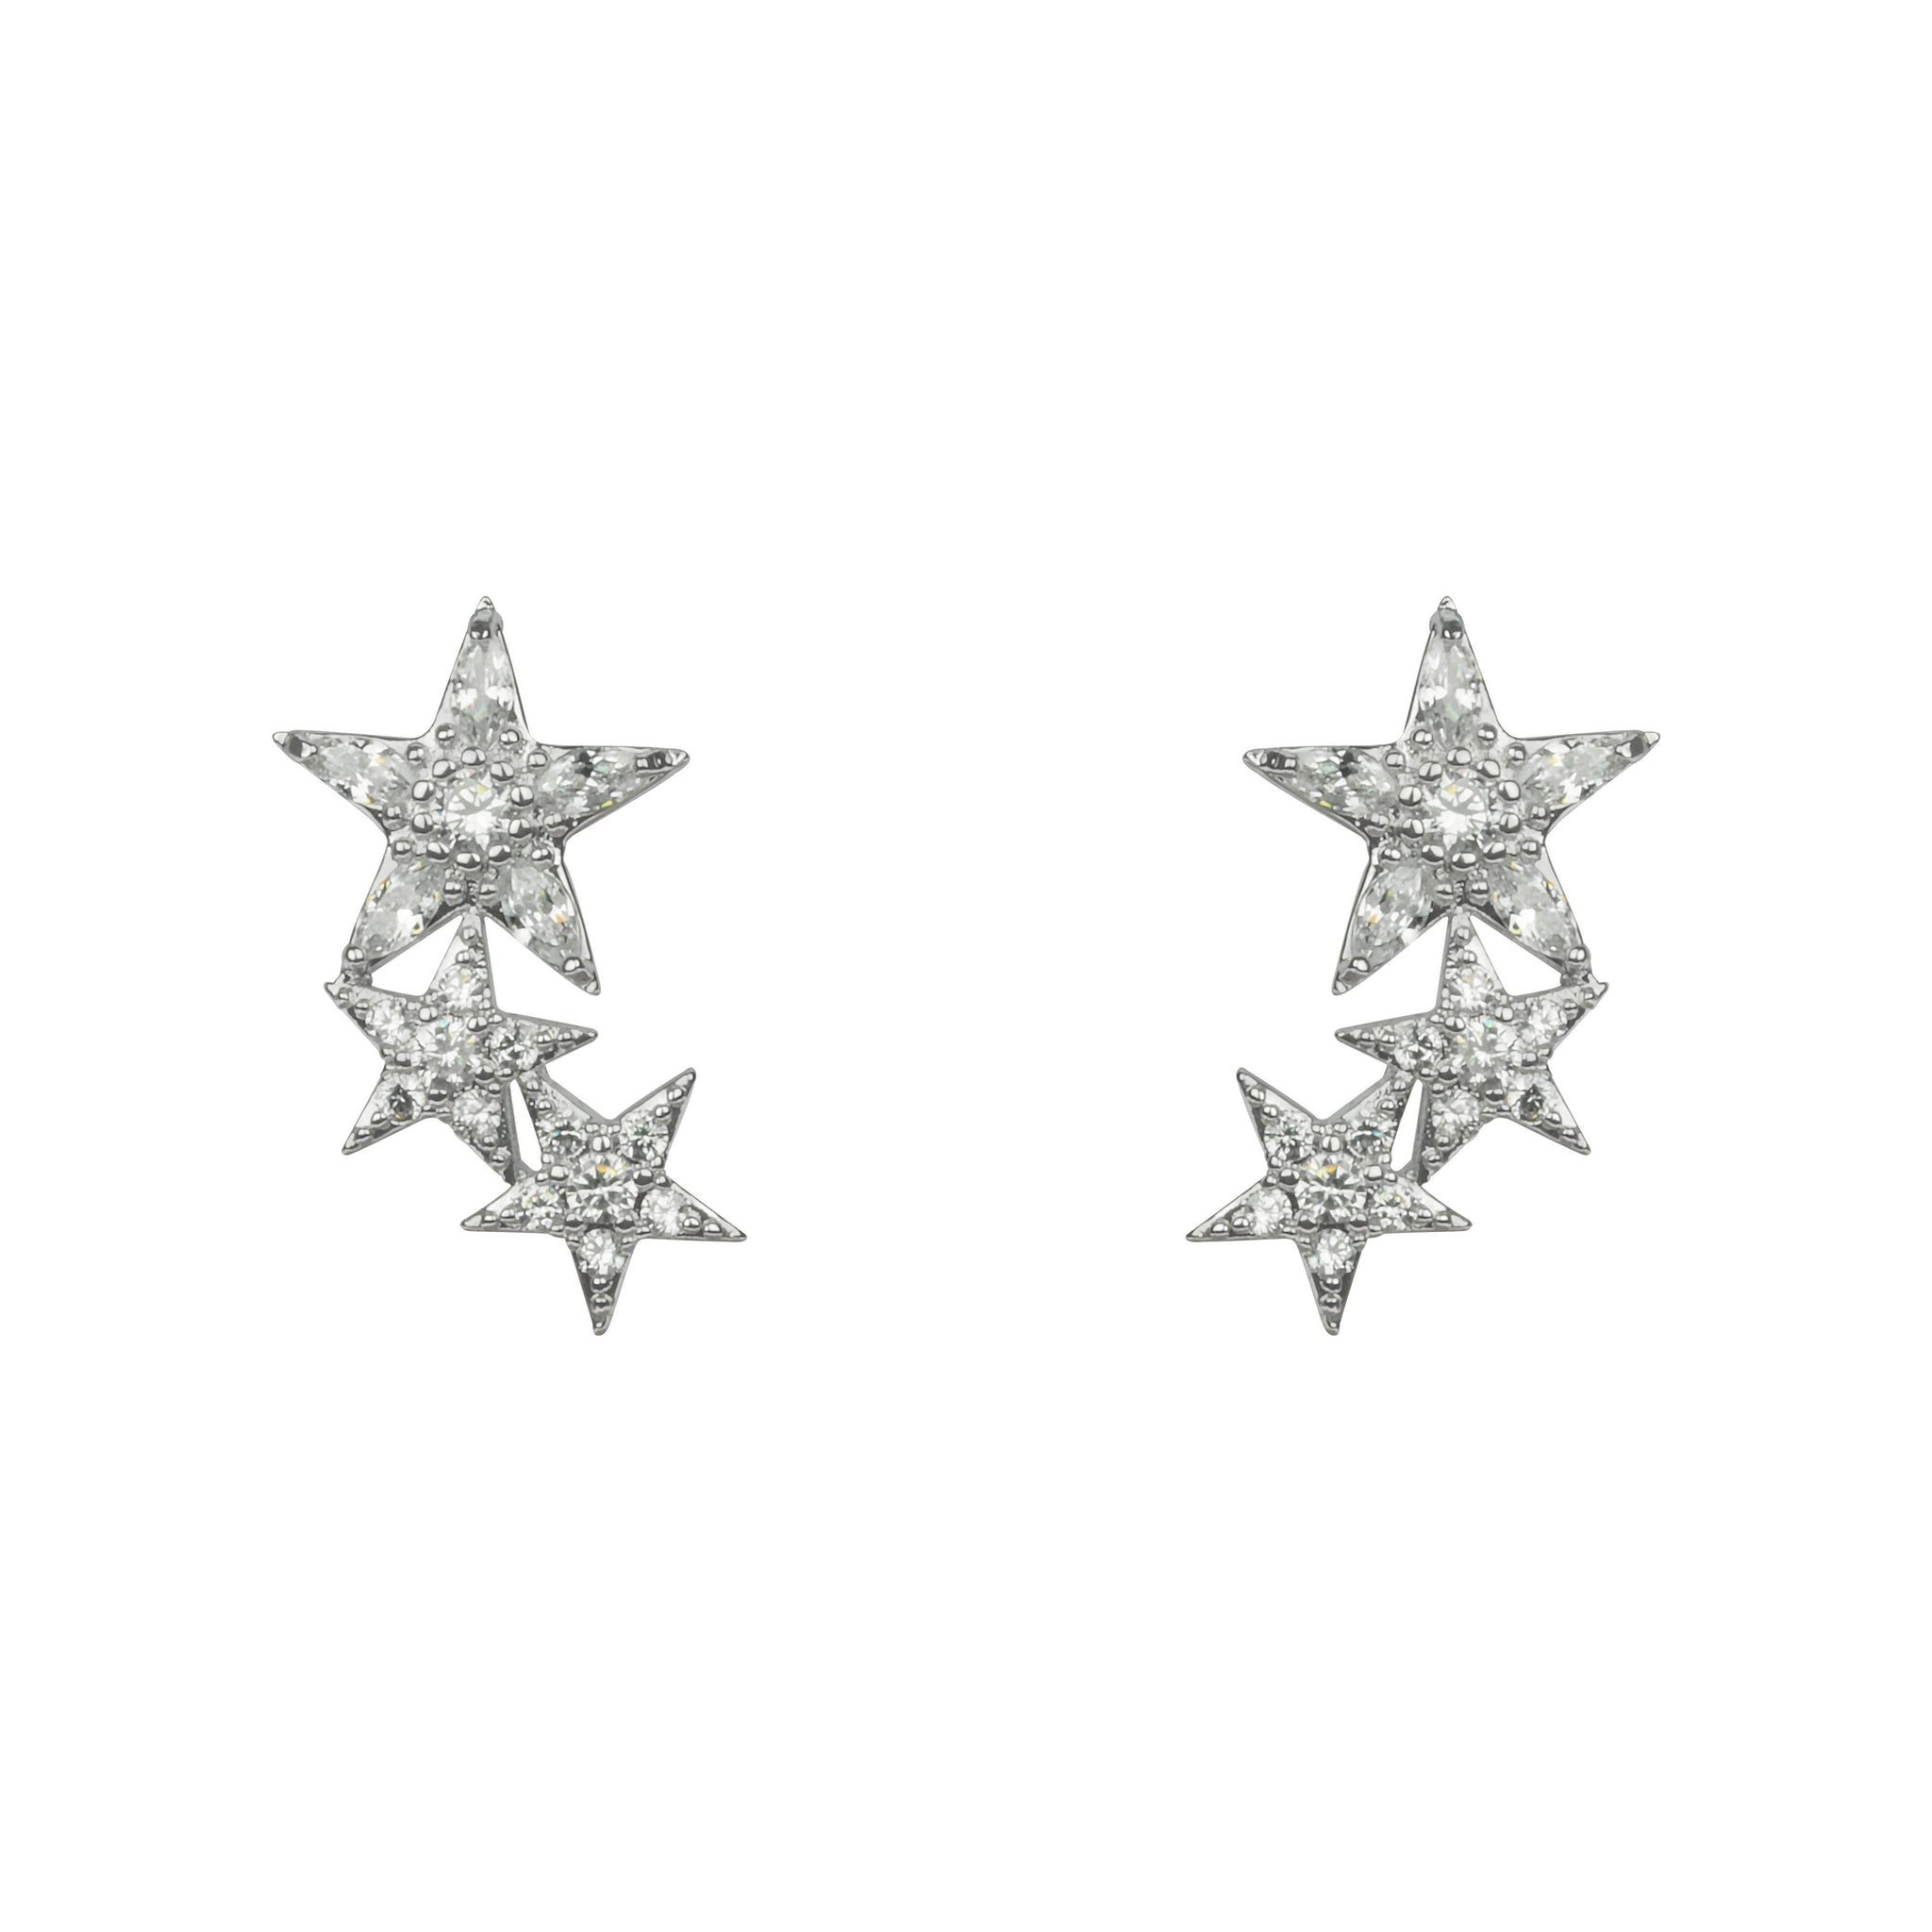 Rhodium & Cubic Zirconia Stars Stud Earrings-Jewellery-Indulgence-Thursford Enterprises Ltd.